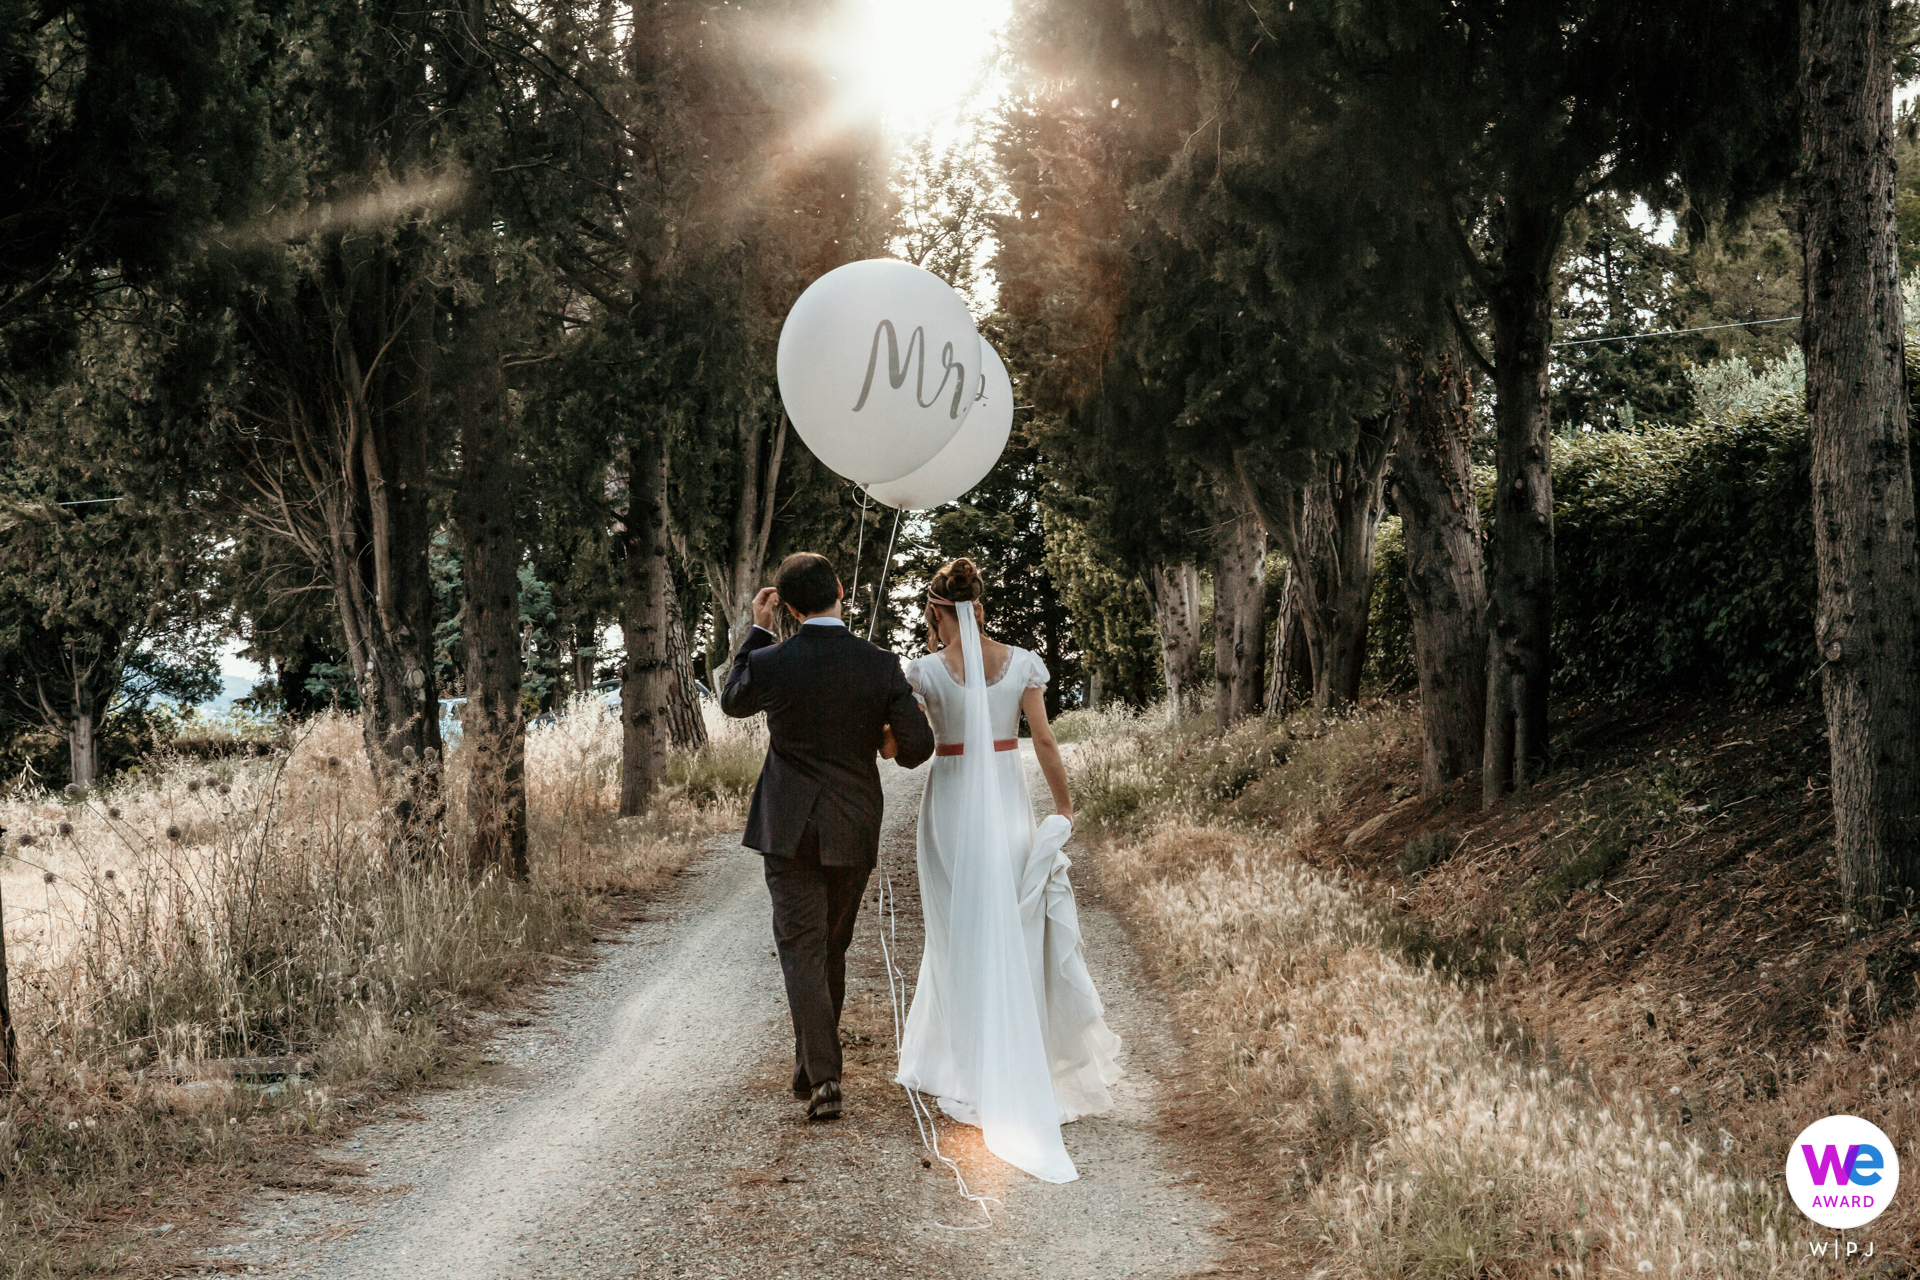 Destination Wedding Image of The bride and groom taking a peaceful stroll together after their ceremony